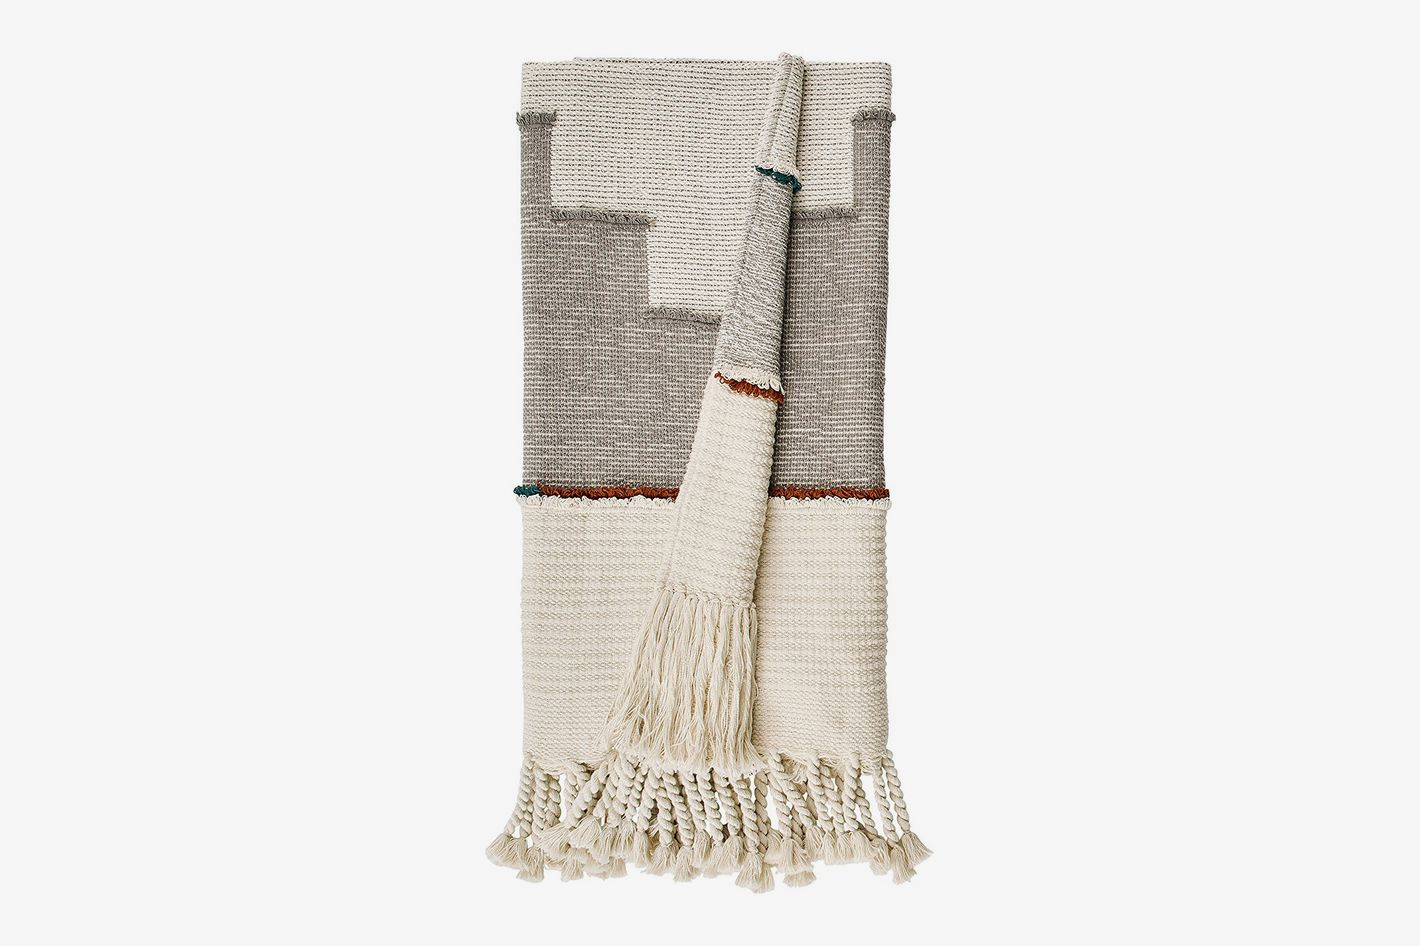 Rivet Modern Global-Inspired Textured Tassel Throw Blanket